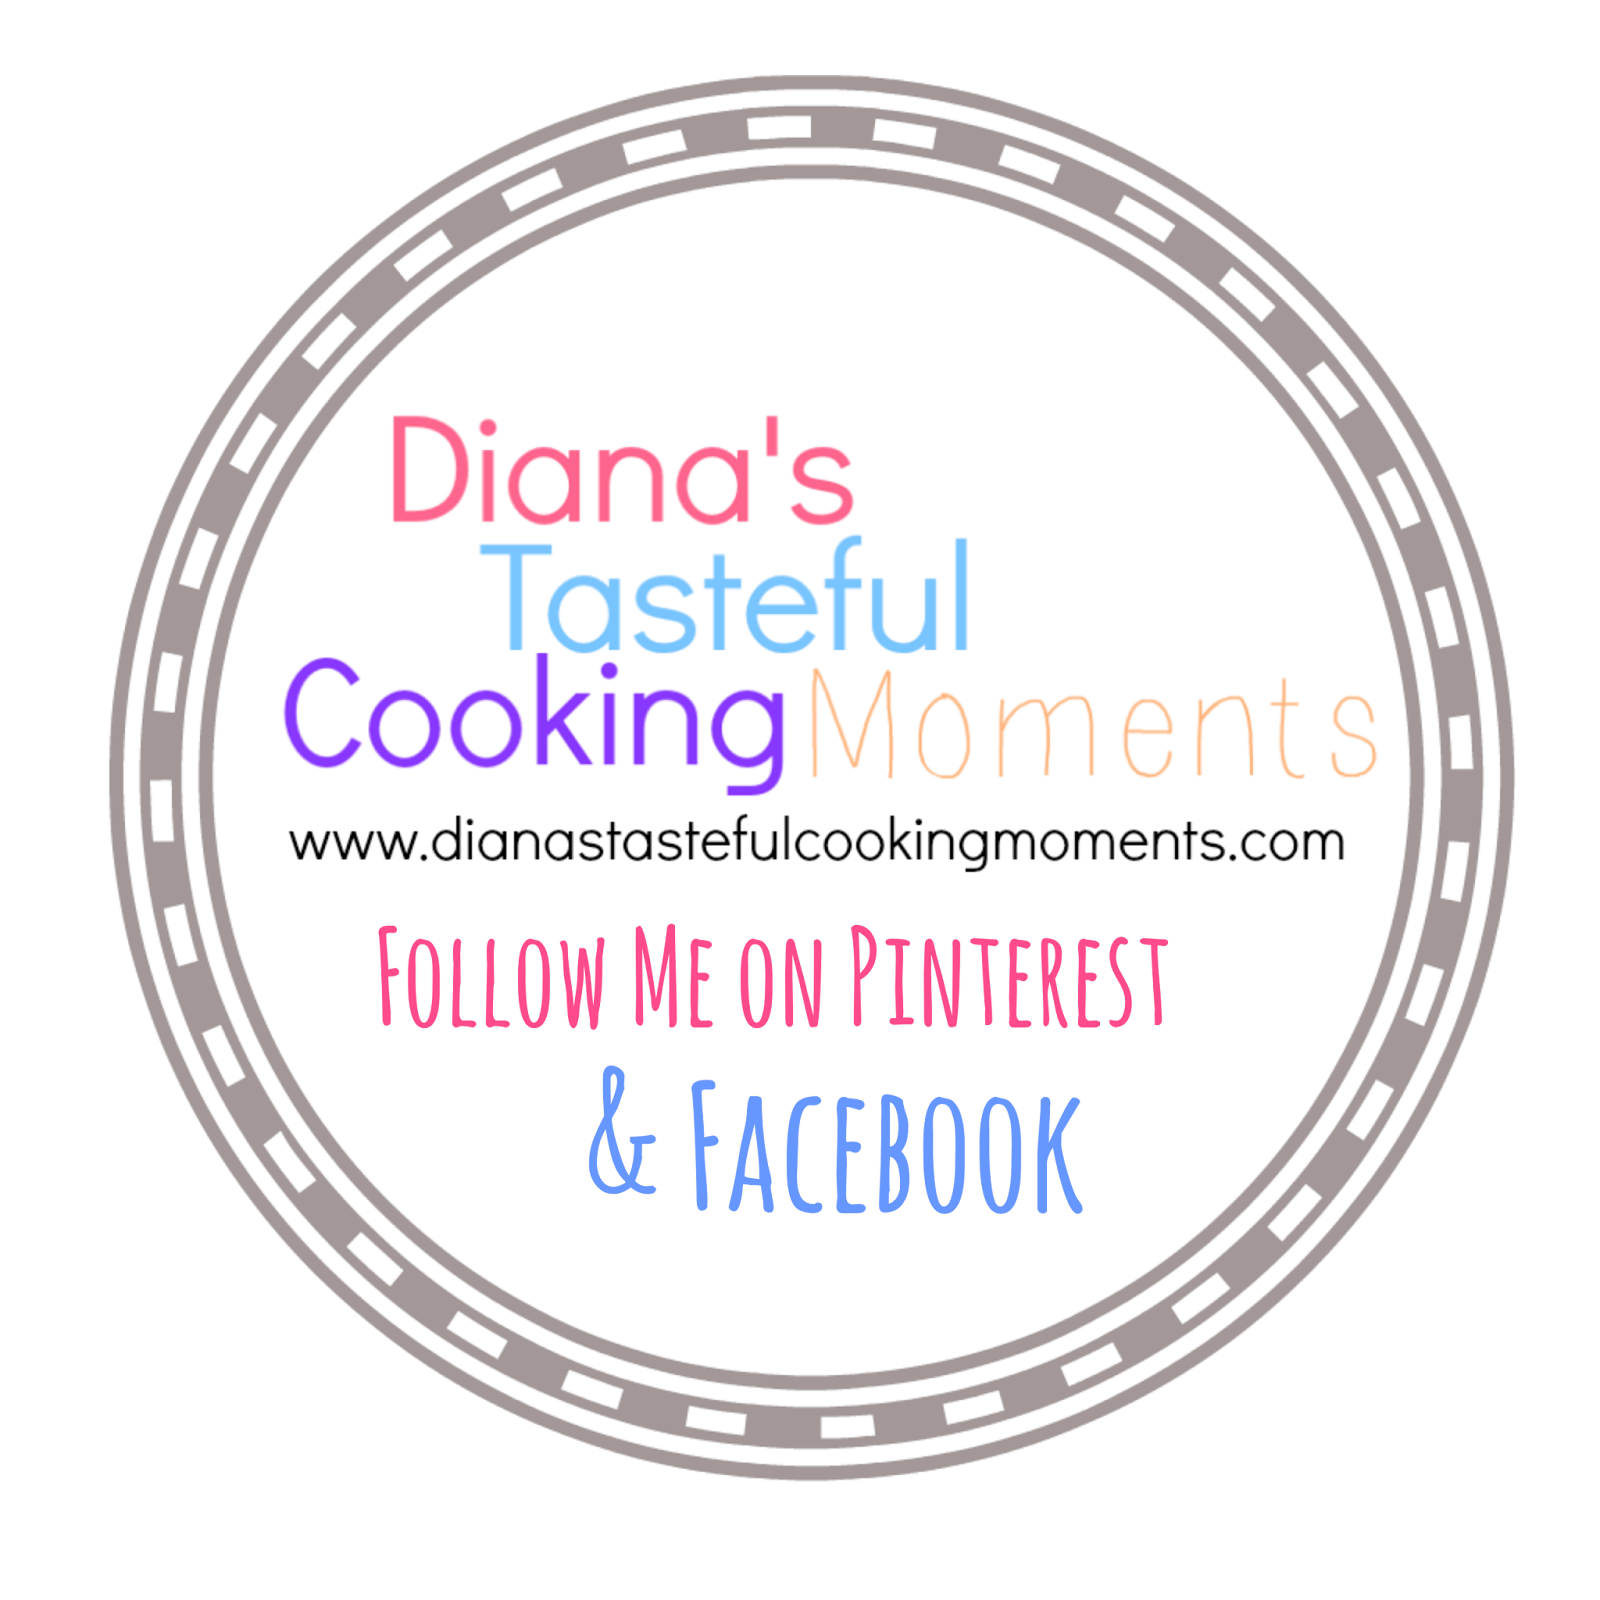 Grab button for Diana's Tasteful Cooking Moments